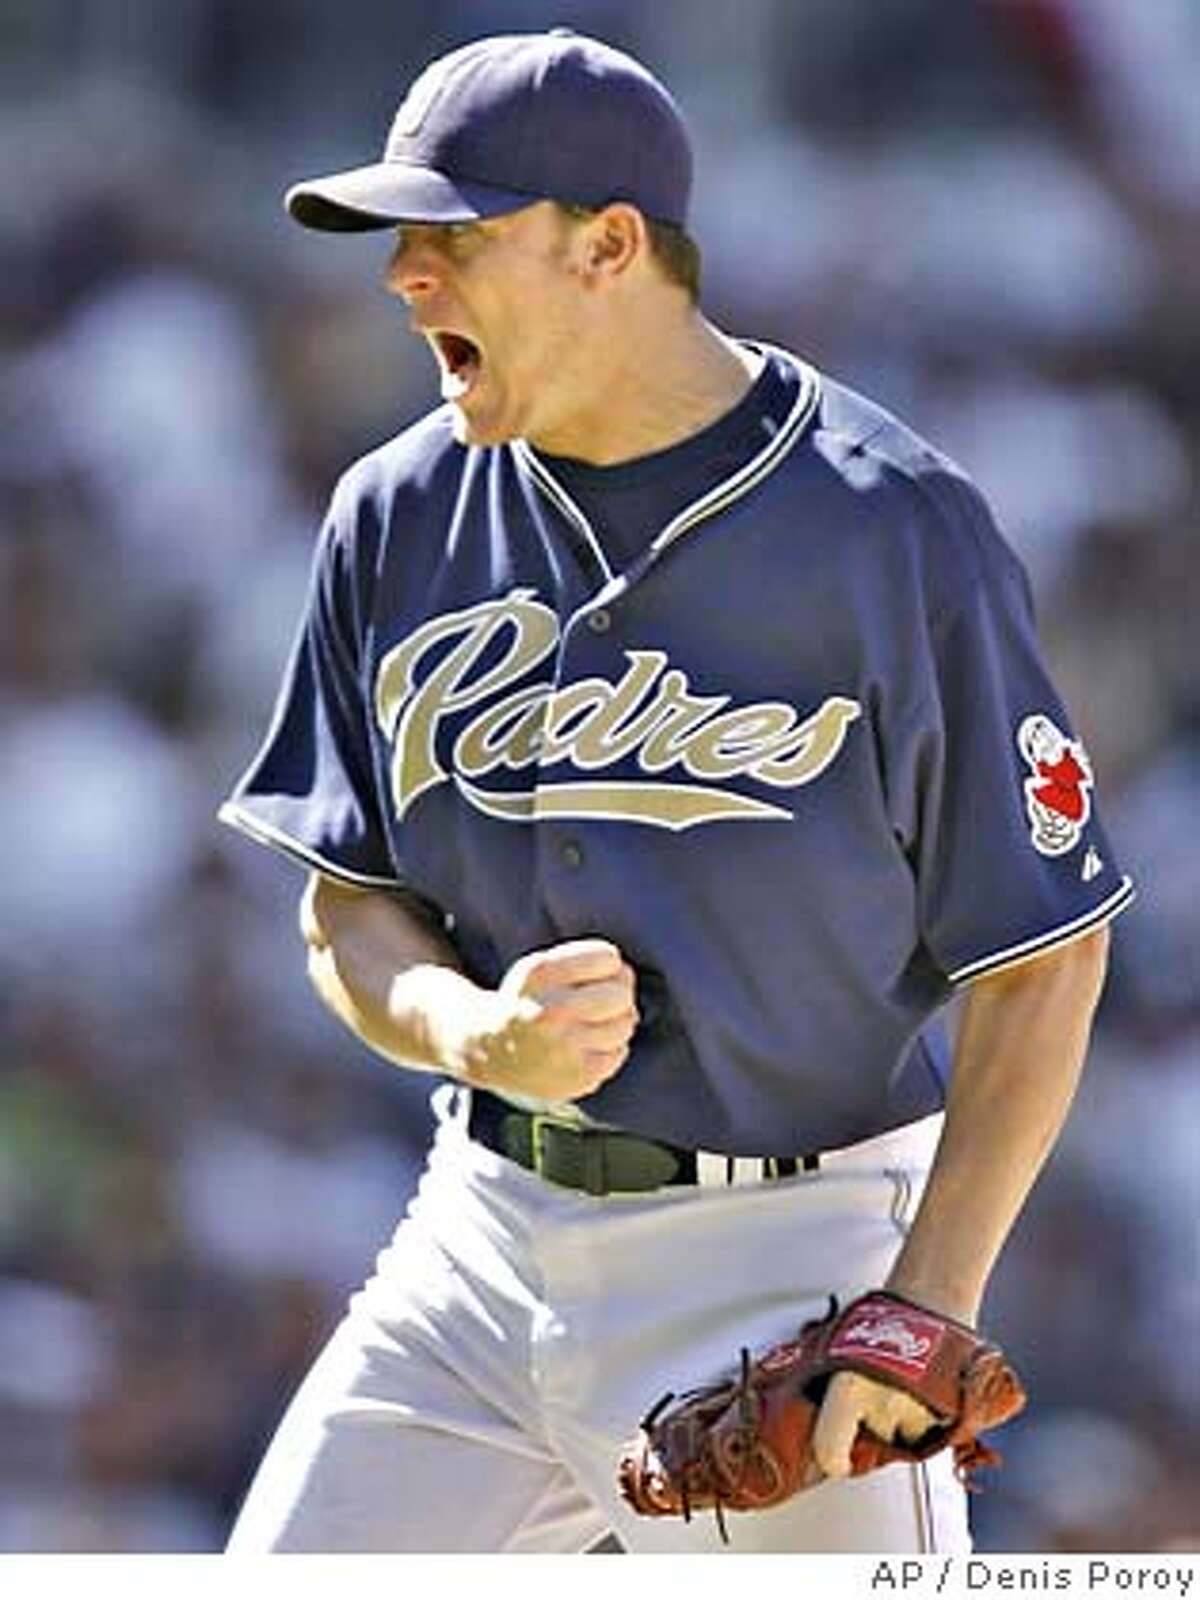 San Diego Padres pitcher Jake Peavy reacts after throwing a strike during the eighth inning of a baseball game against the San Francisco Giants Sunday, Sept. 16, 2007 in San Diego. The Padres won 5-1. (AP Photo/Denis Poroy)